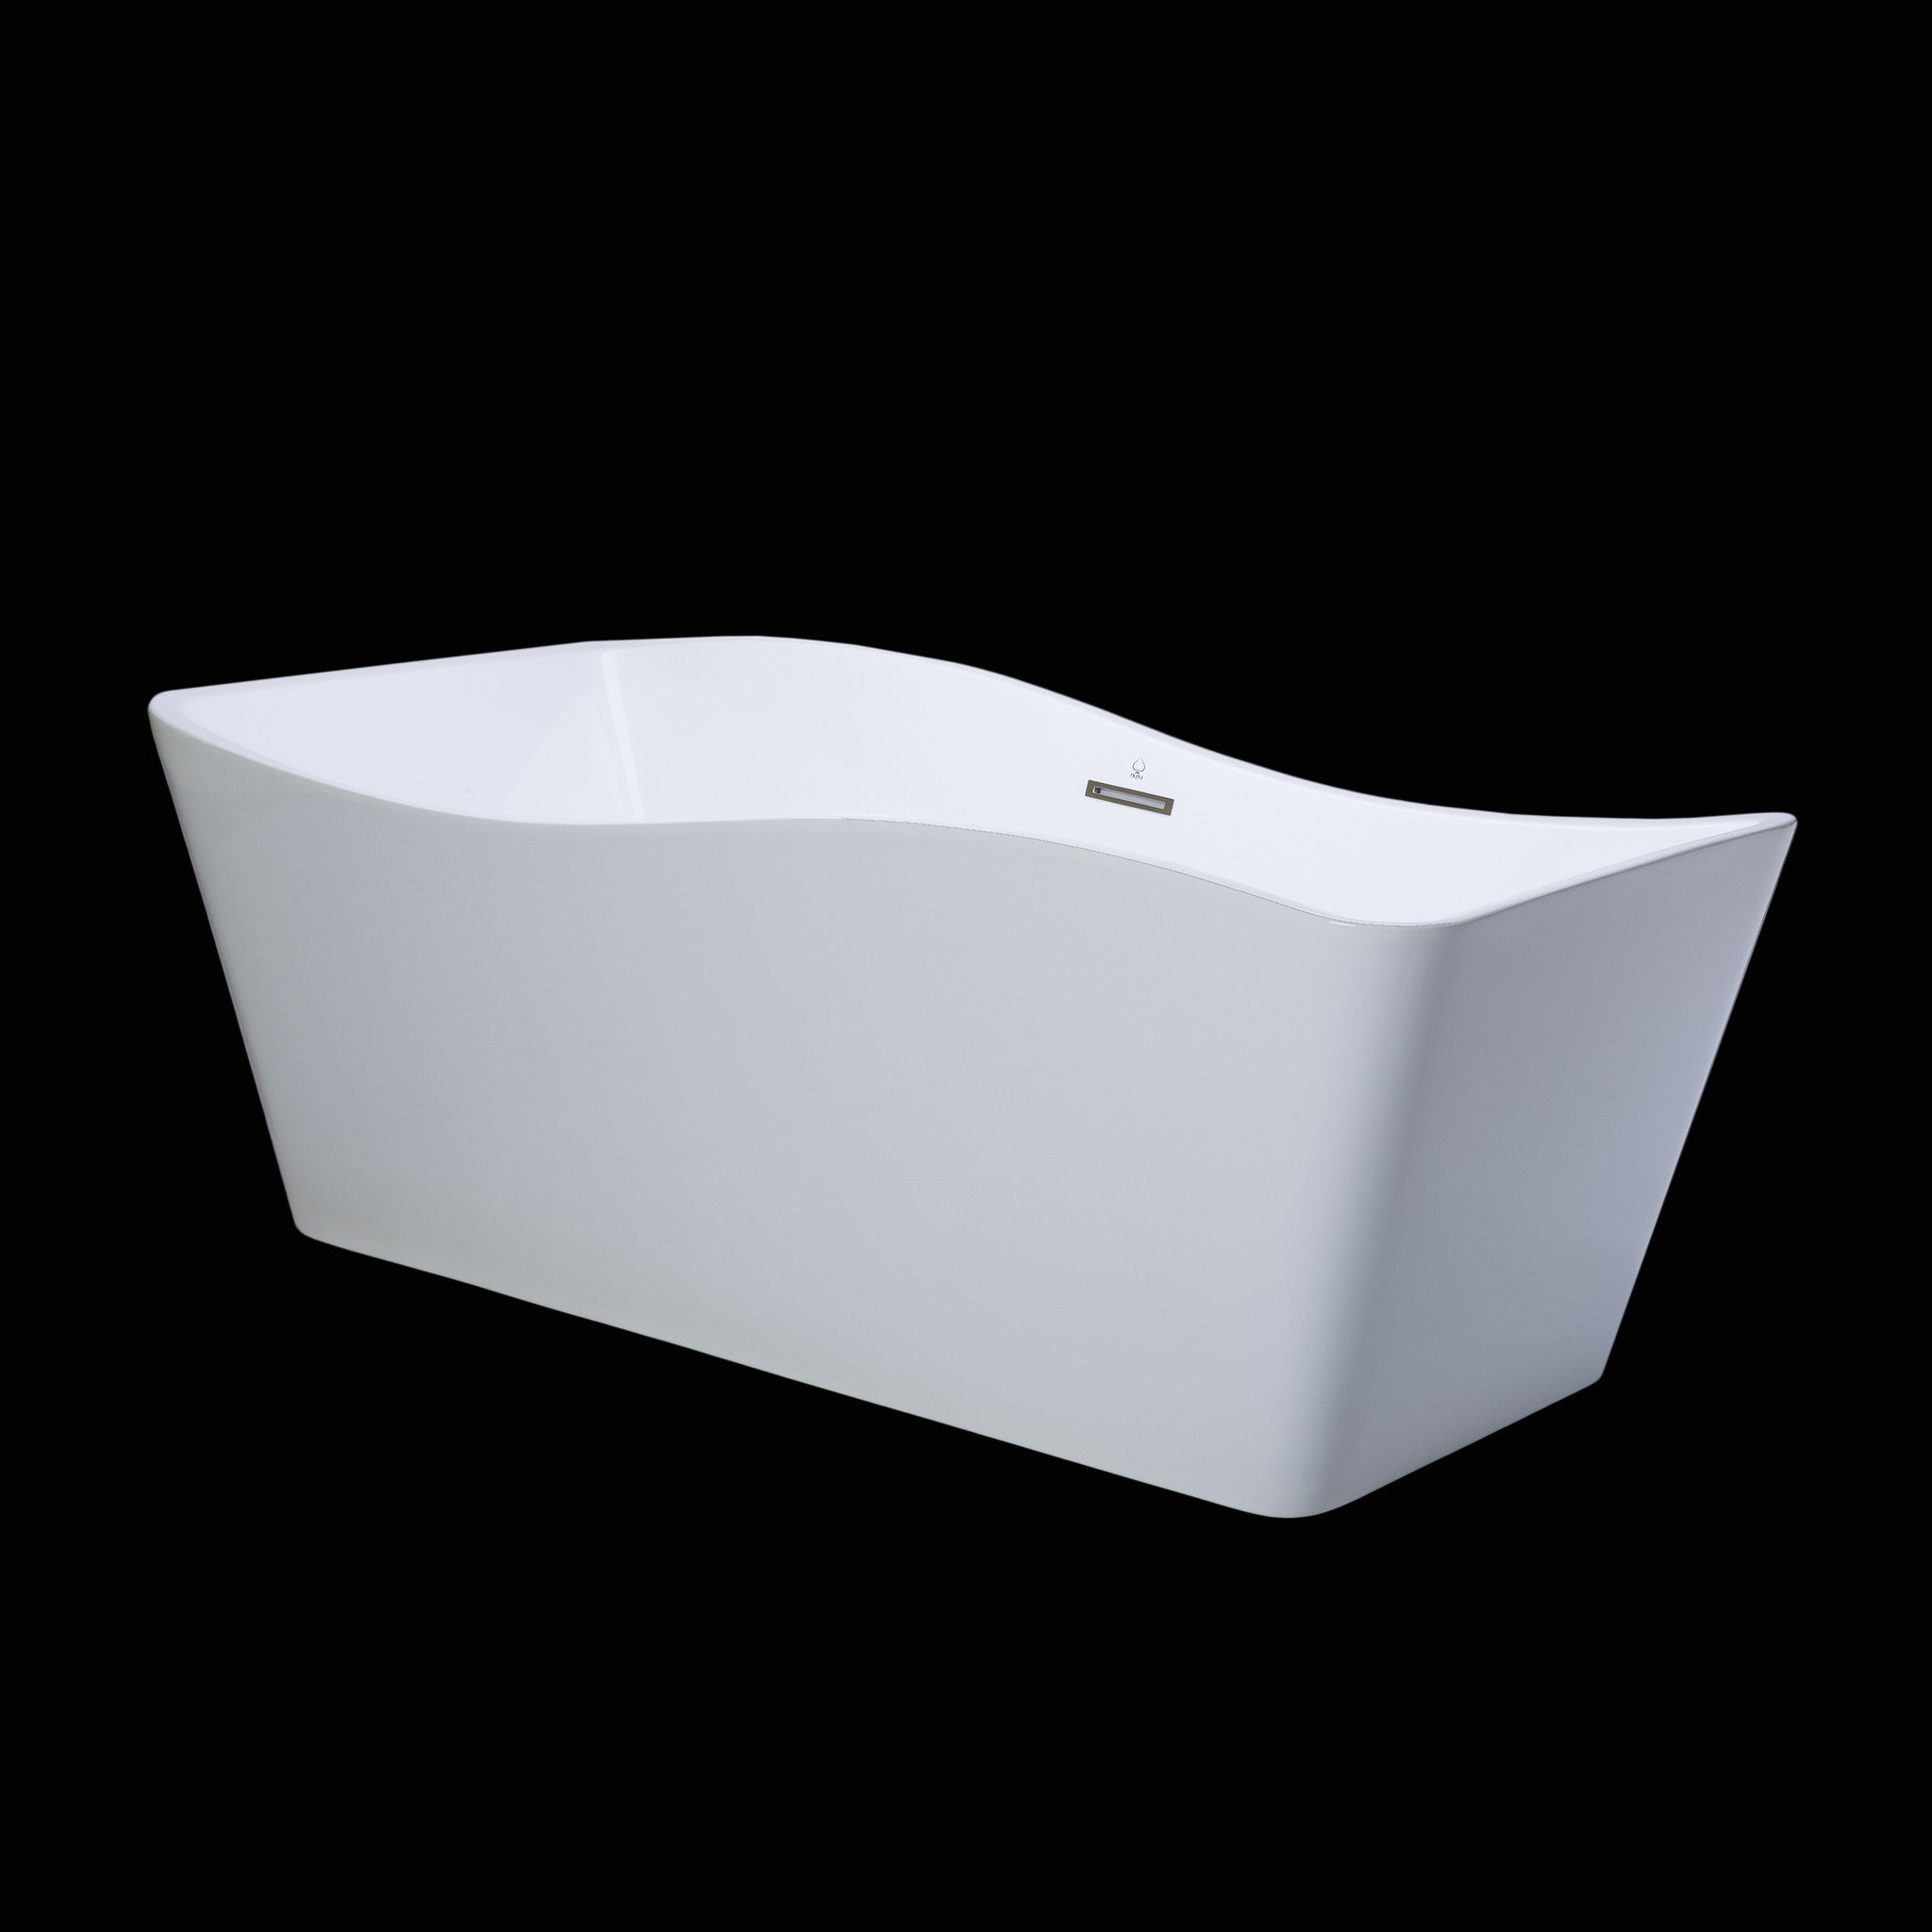 for com piccolo with bathtub jacuzzi faucet soaking freestanding white environment drain installation reversible